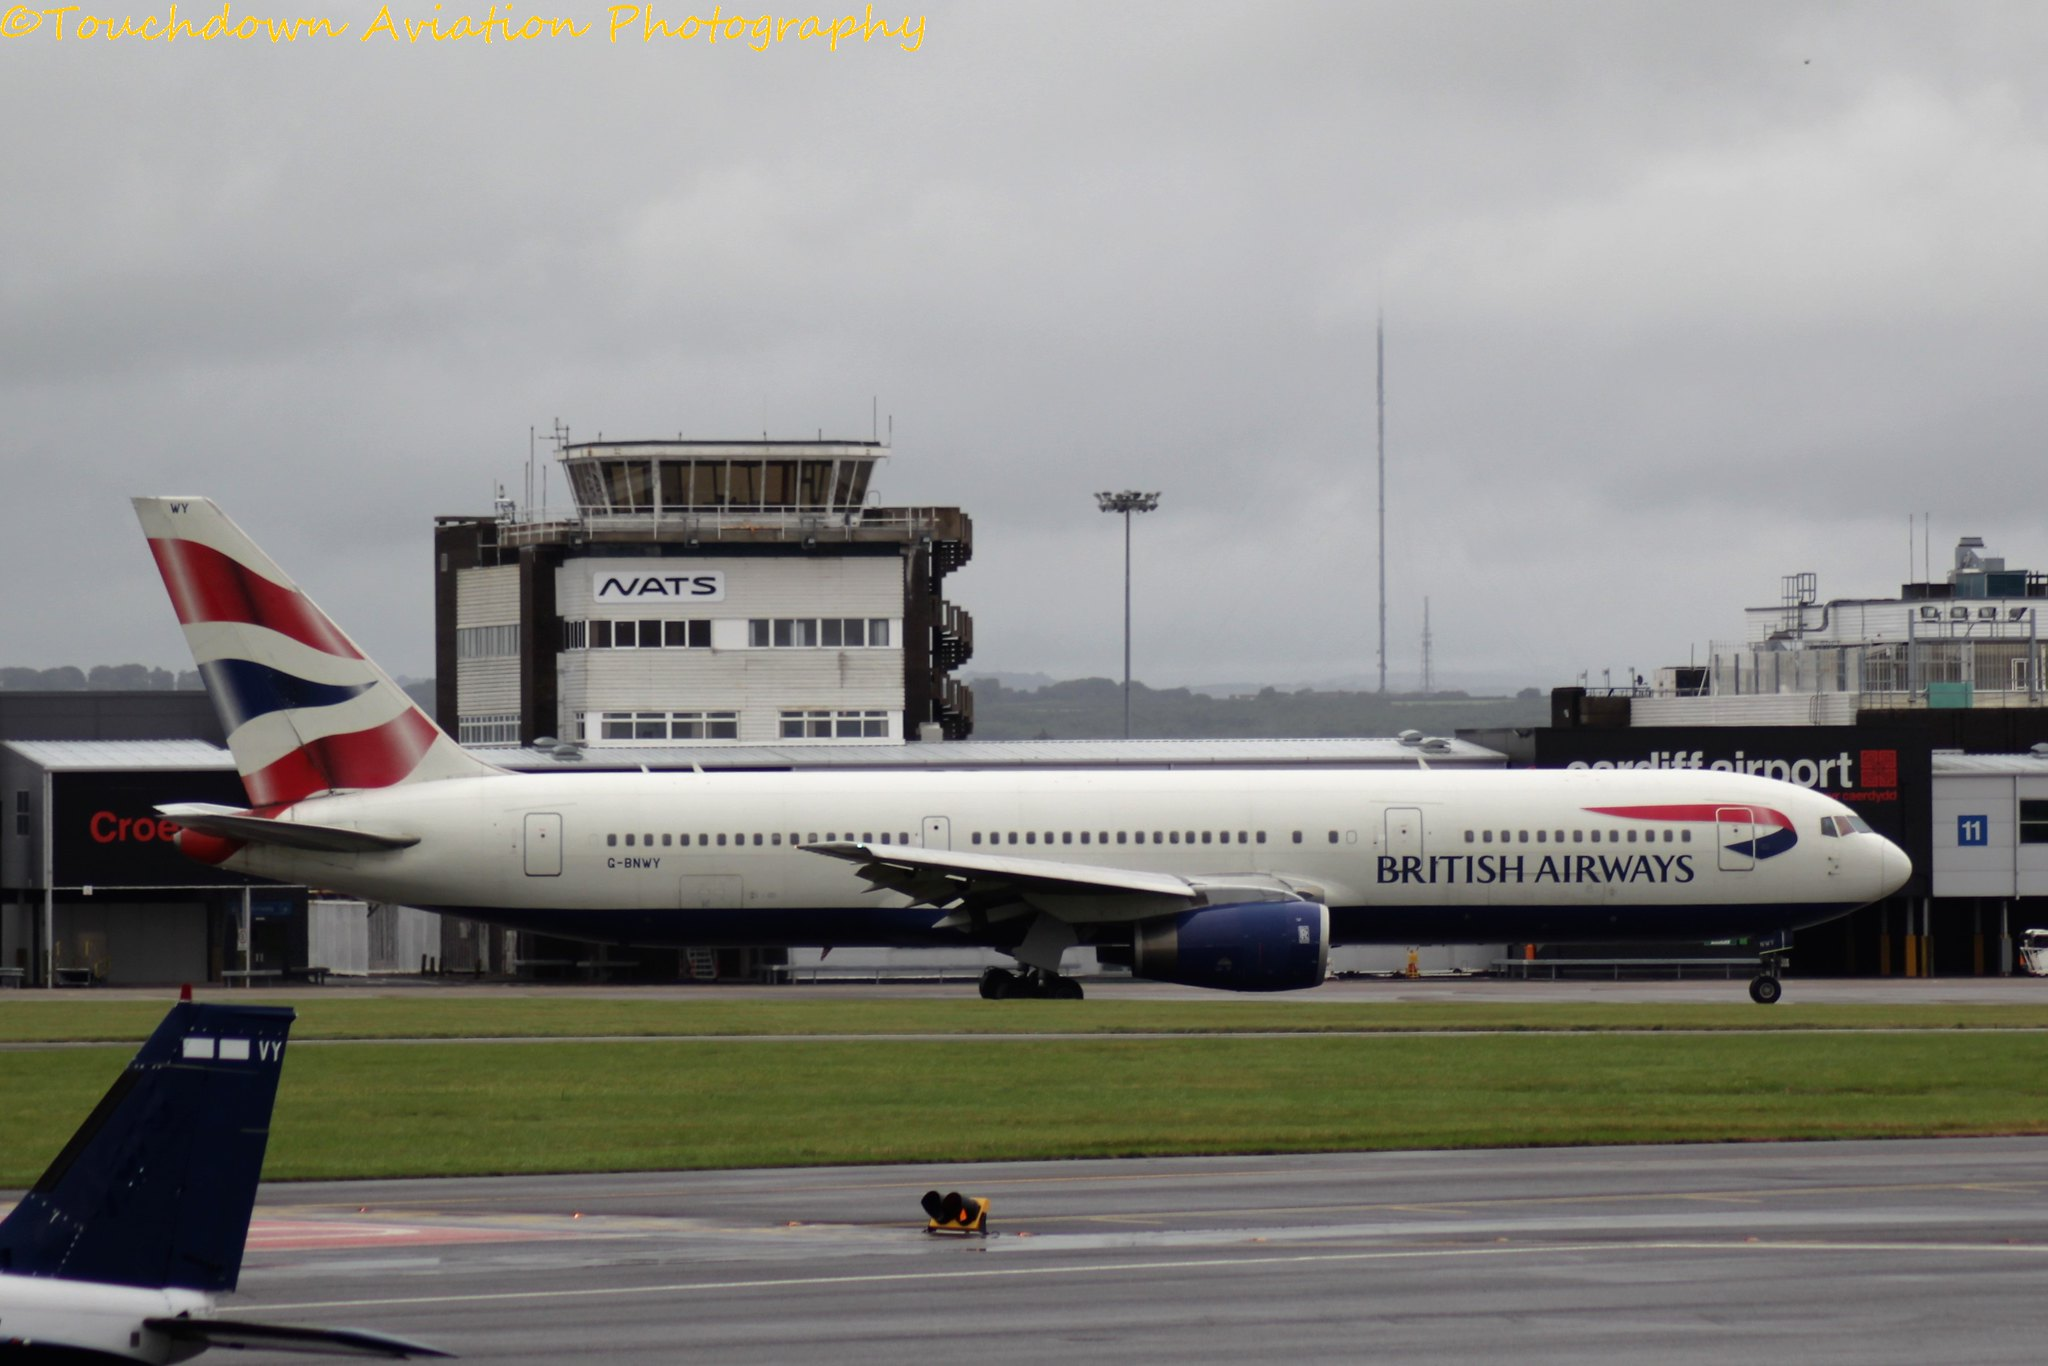 British Airways Boeing 767-300 G-BNWY 02SEP16